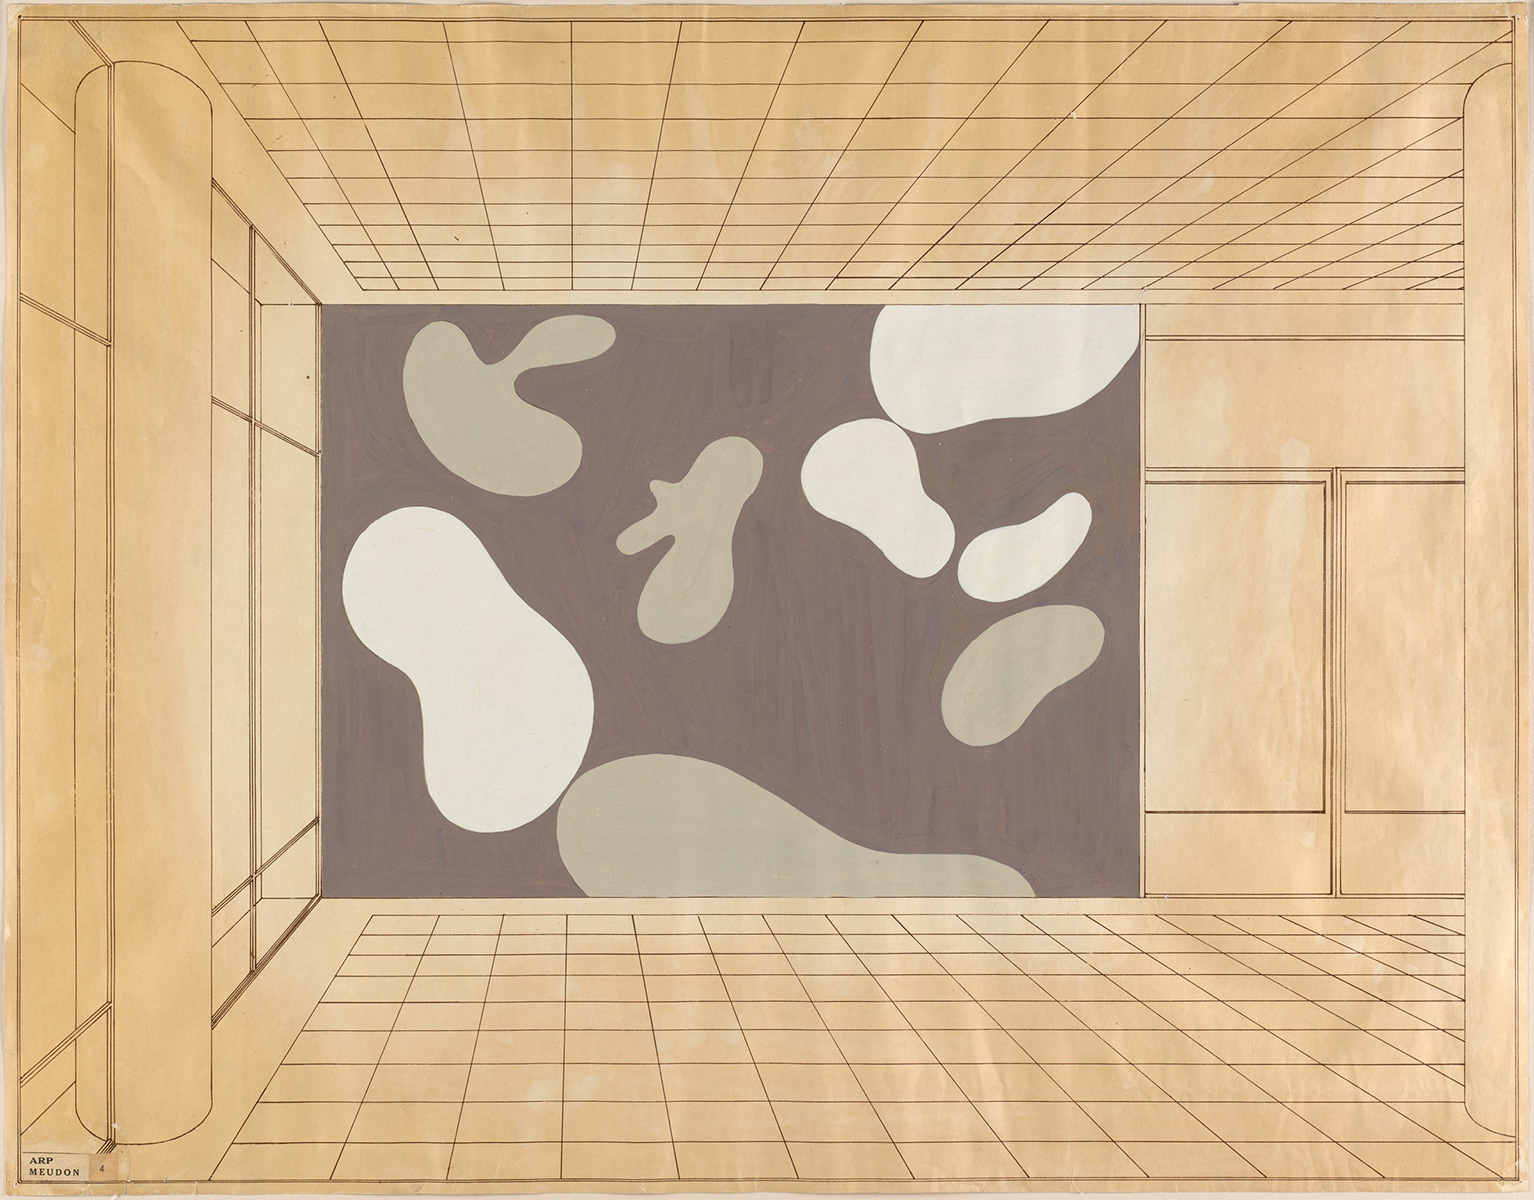 Hans Arp, French, Abstraction, 1950. Opaque watercolor and black ink on off-white wove paper with architectural design. Harvard Art Museums/Fogg Museum, Transfer from the Harvard Corporation, 1951.119.